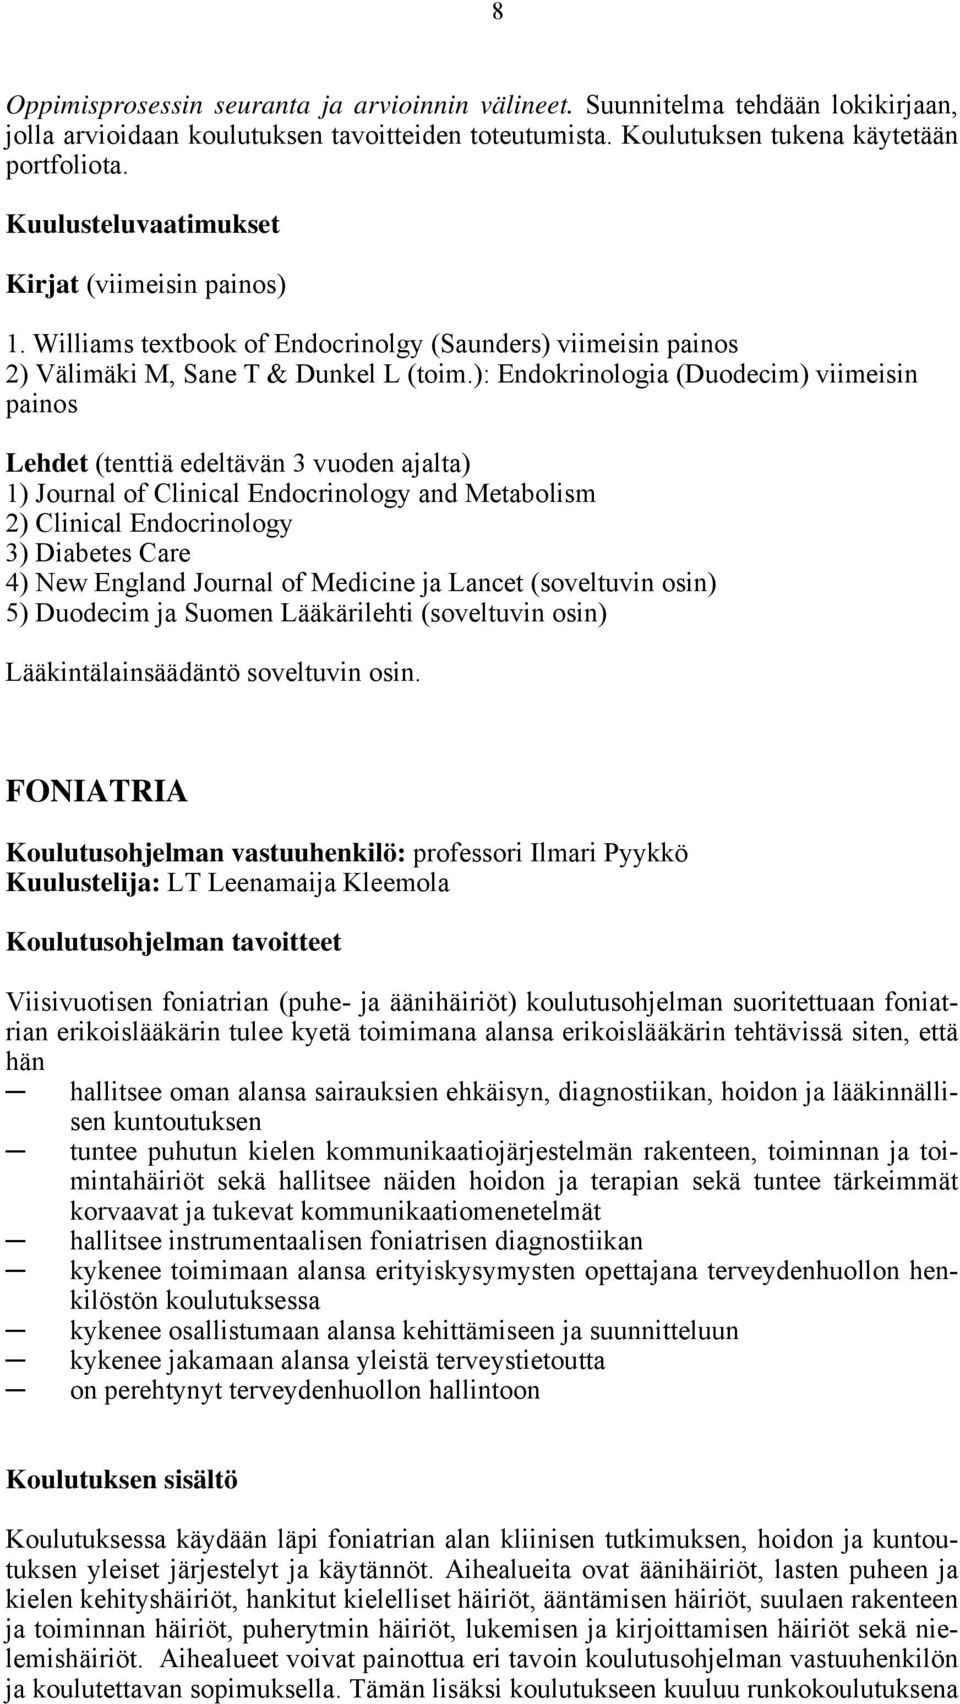 ): Endokrinologia (Duodecim) viimeisin painos Lehdet (tenttiä edeltävän 3 vuoden ajalta) 1) Journal of Clinical Endocrinology and Metabolism 2) Clinical Endocrinology 3) Diabetes Care 4) New England